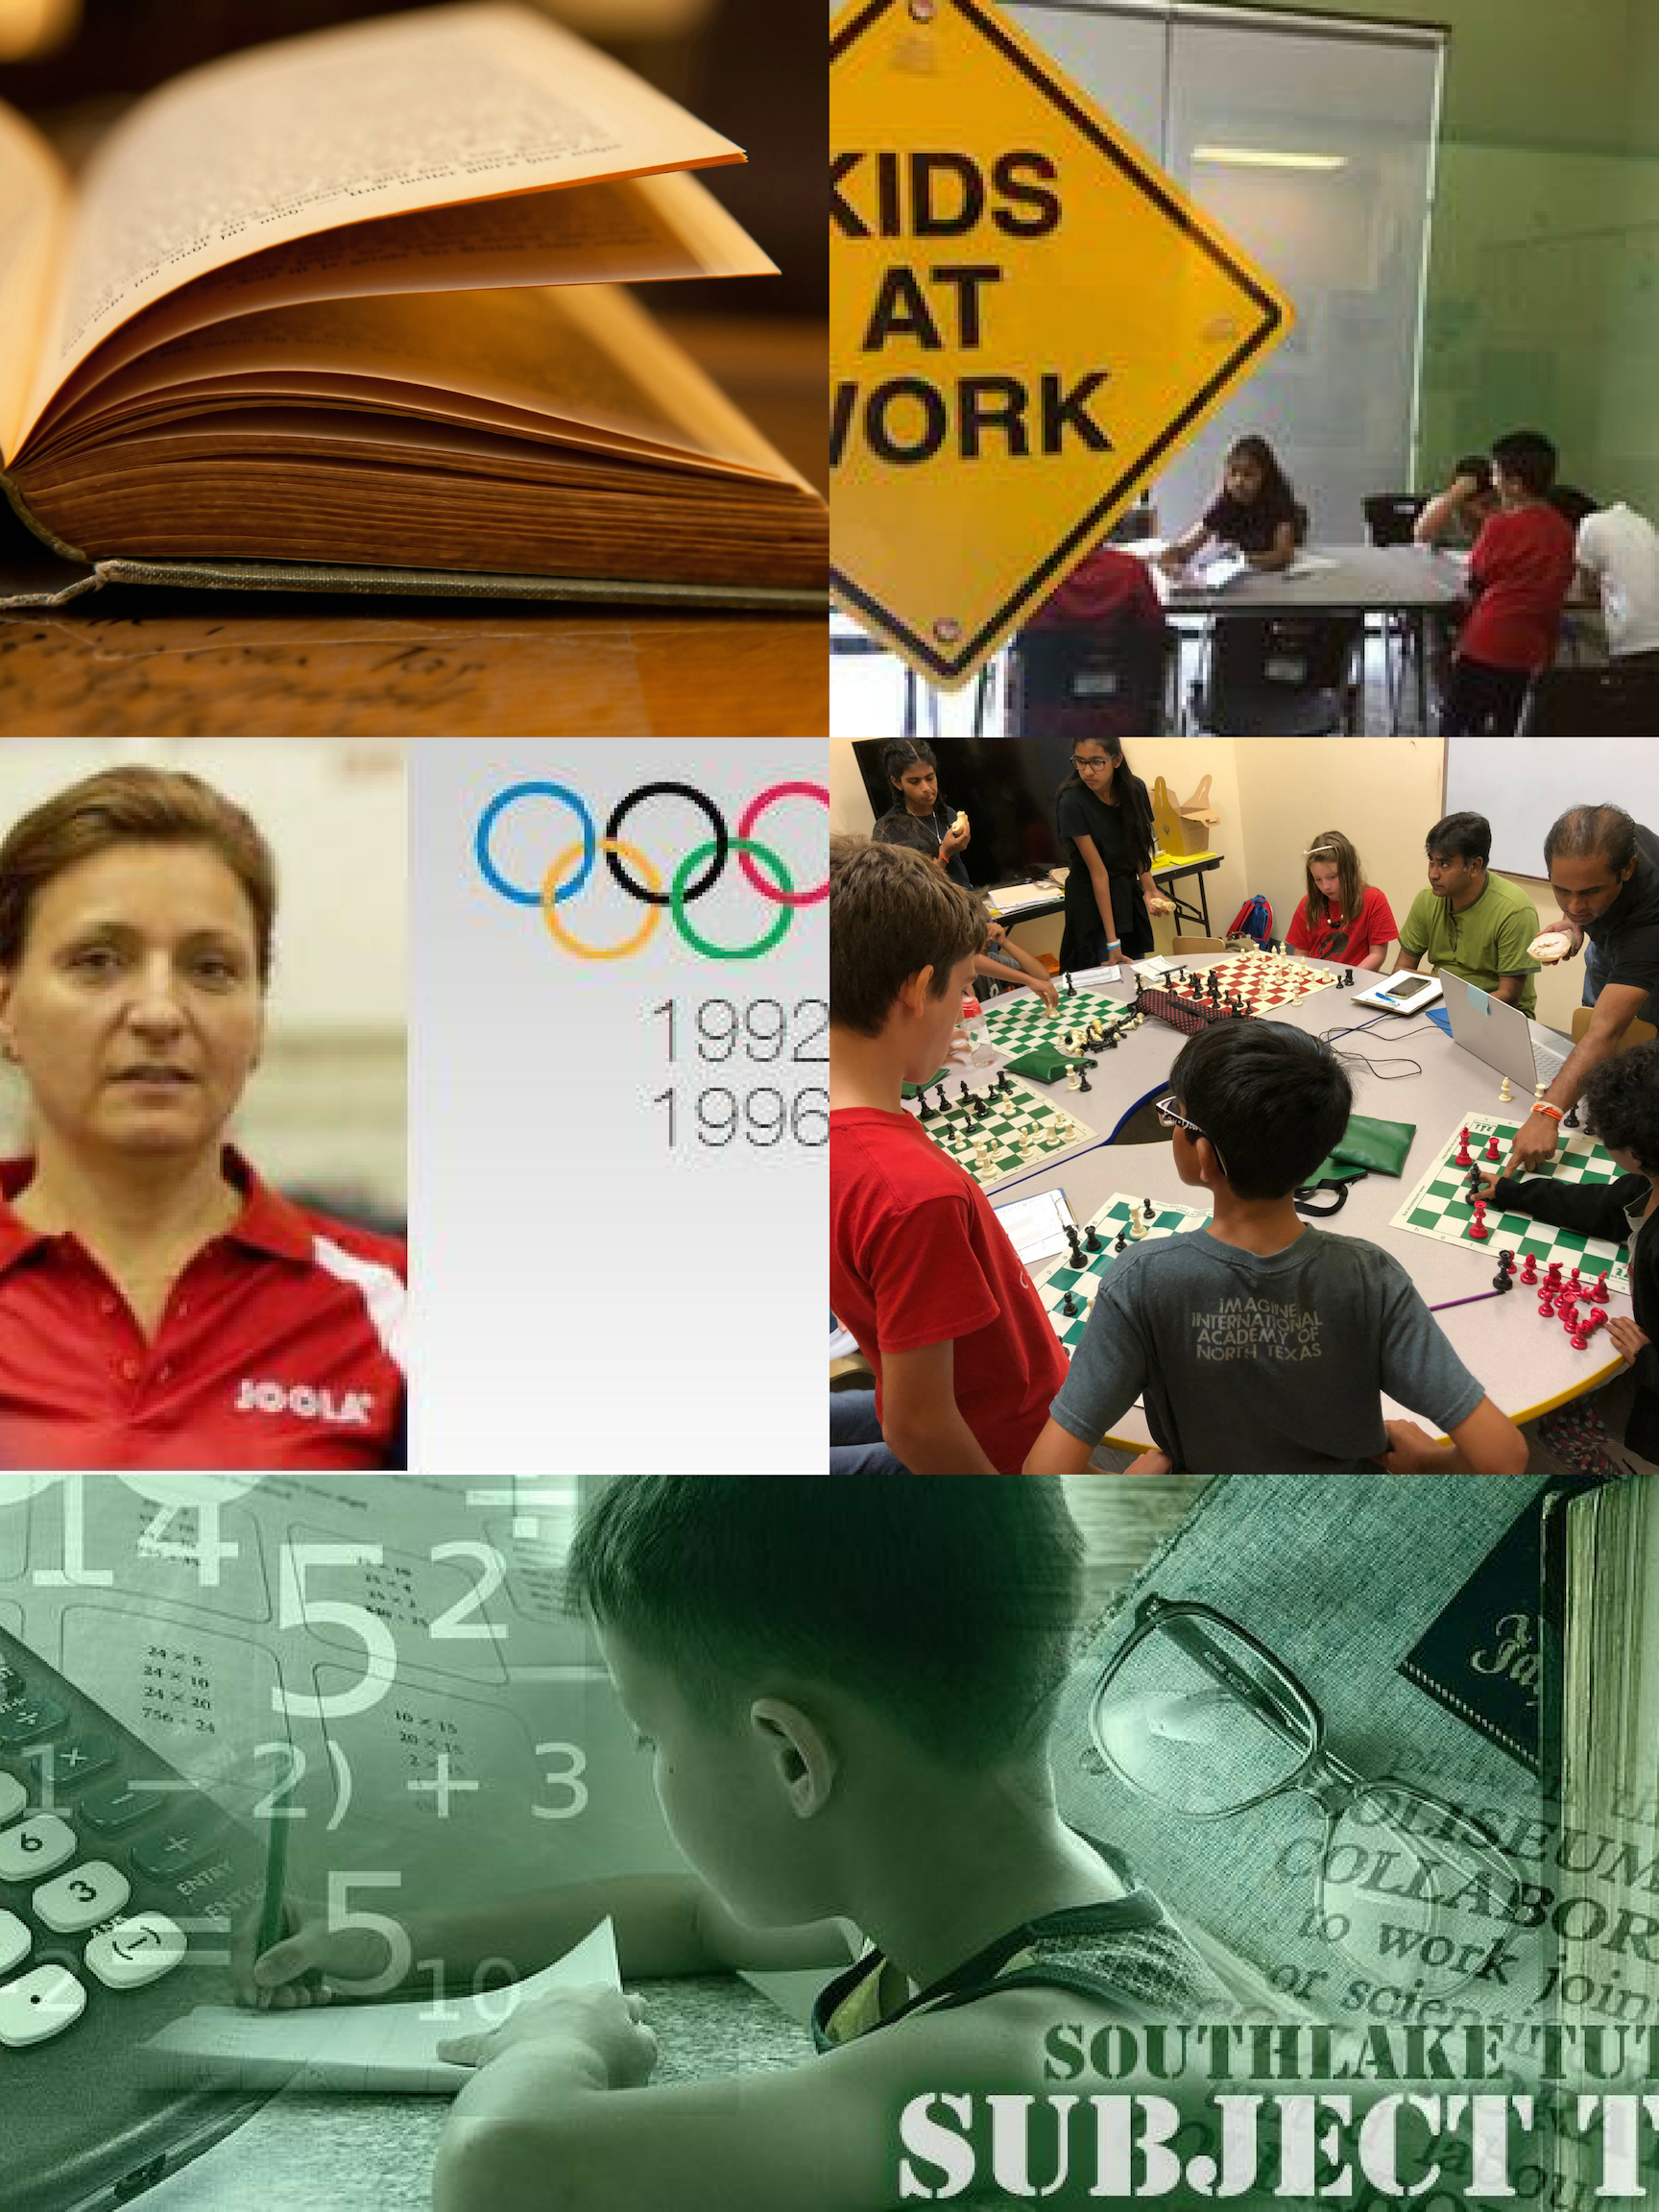 GROUP AND PRIVATE TUTORING - mATH, ENGLISH, PIANO, CHINESE, TEST PREP, AND MUCH MUCH MORE.